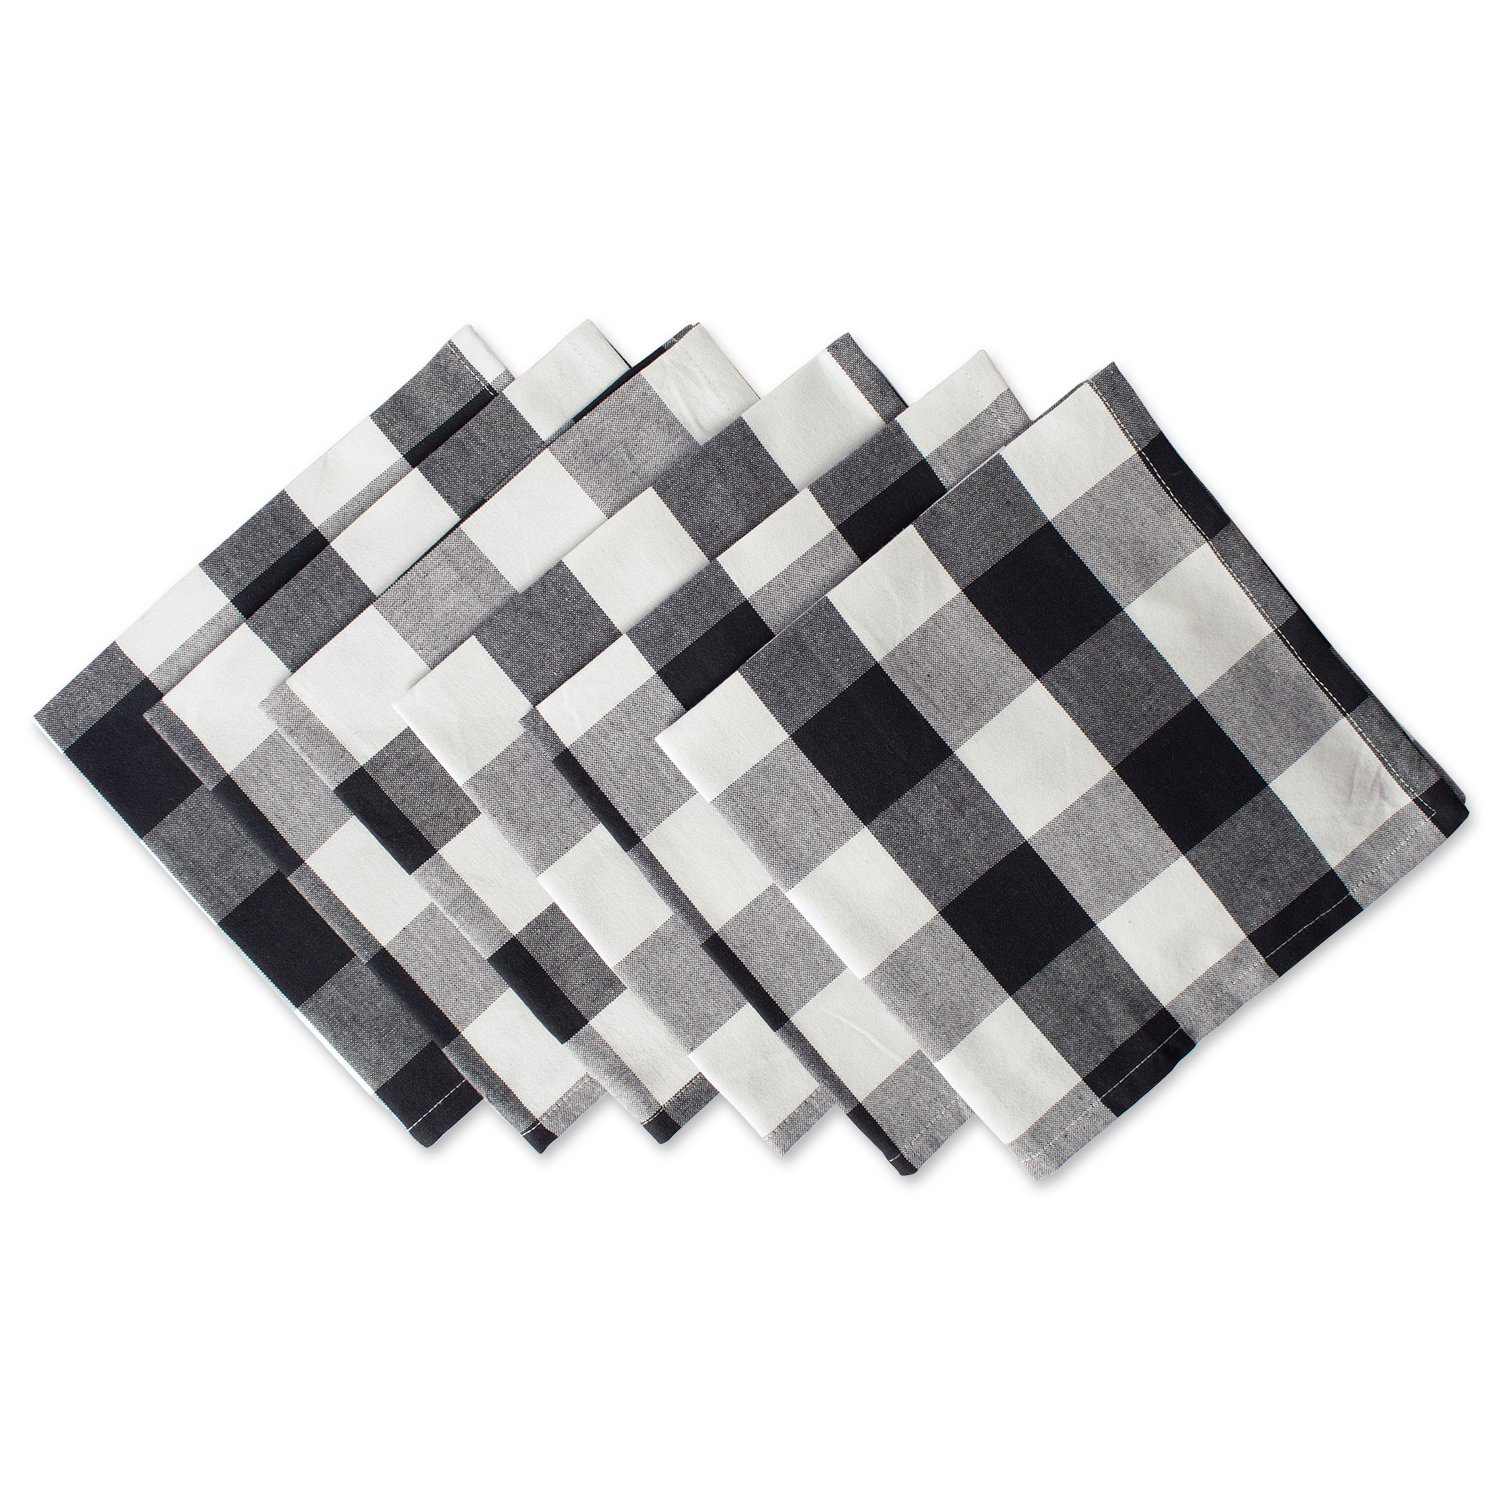 DII Cotton Buffalo Check Oversized Basic Cloth Napkin for Everyday Place Settings, Farmhouse Décor, Family Dinners, BBQ's, and Holidays (20x20'', Set of 6) Black & White